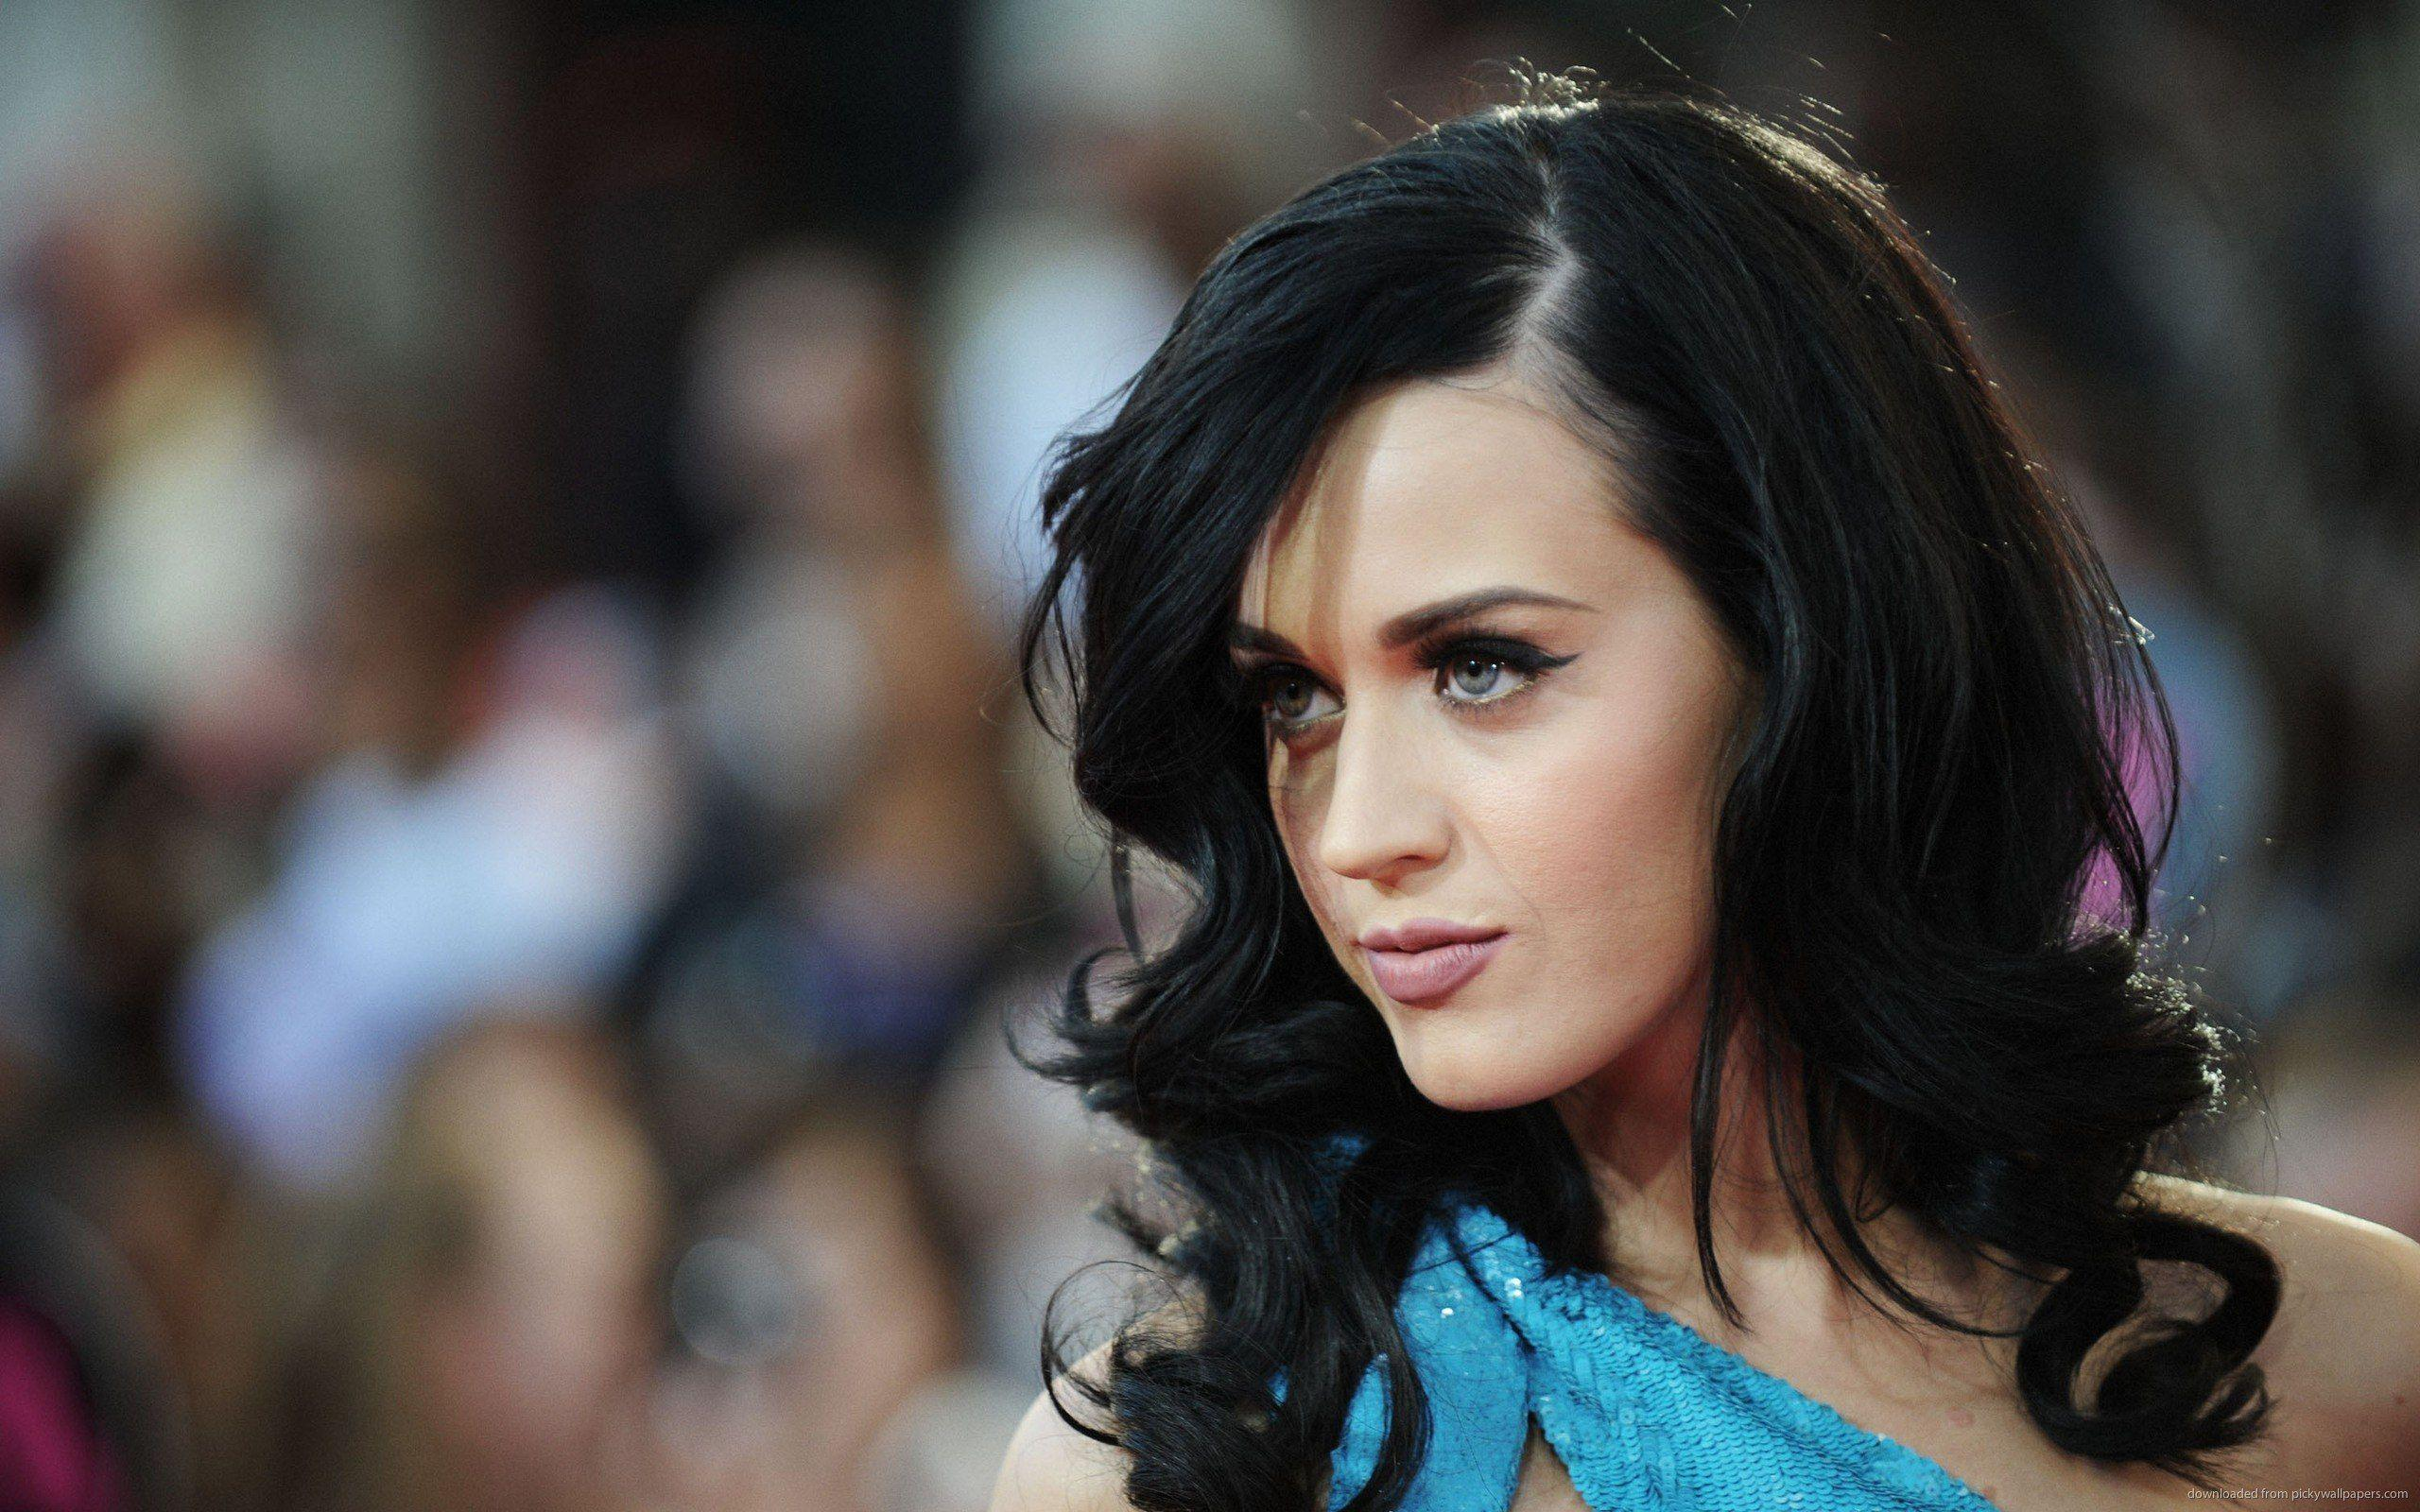 katy perry wallpaper 1080p - photo #8